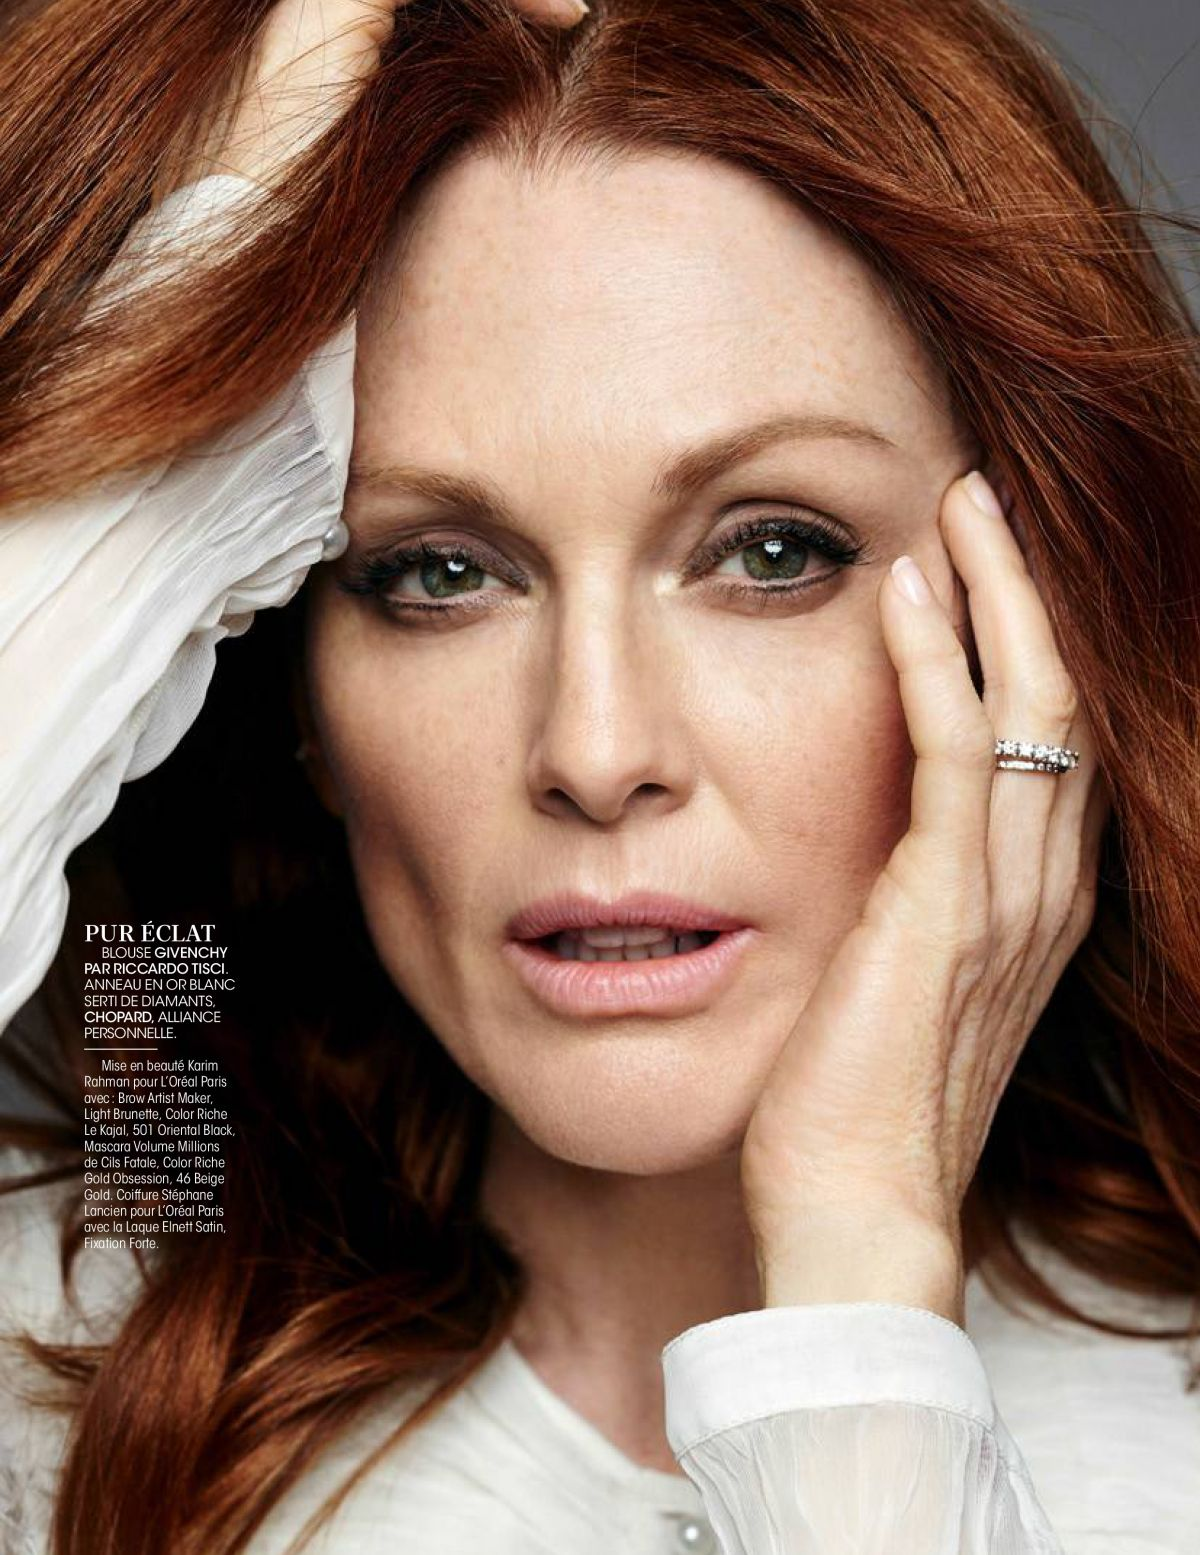 JULIANNE MOORE in Madame Figaro Magazine, France November 2016 Issue